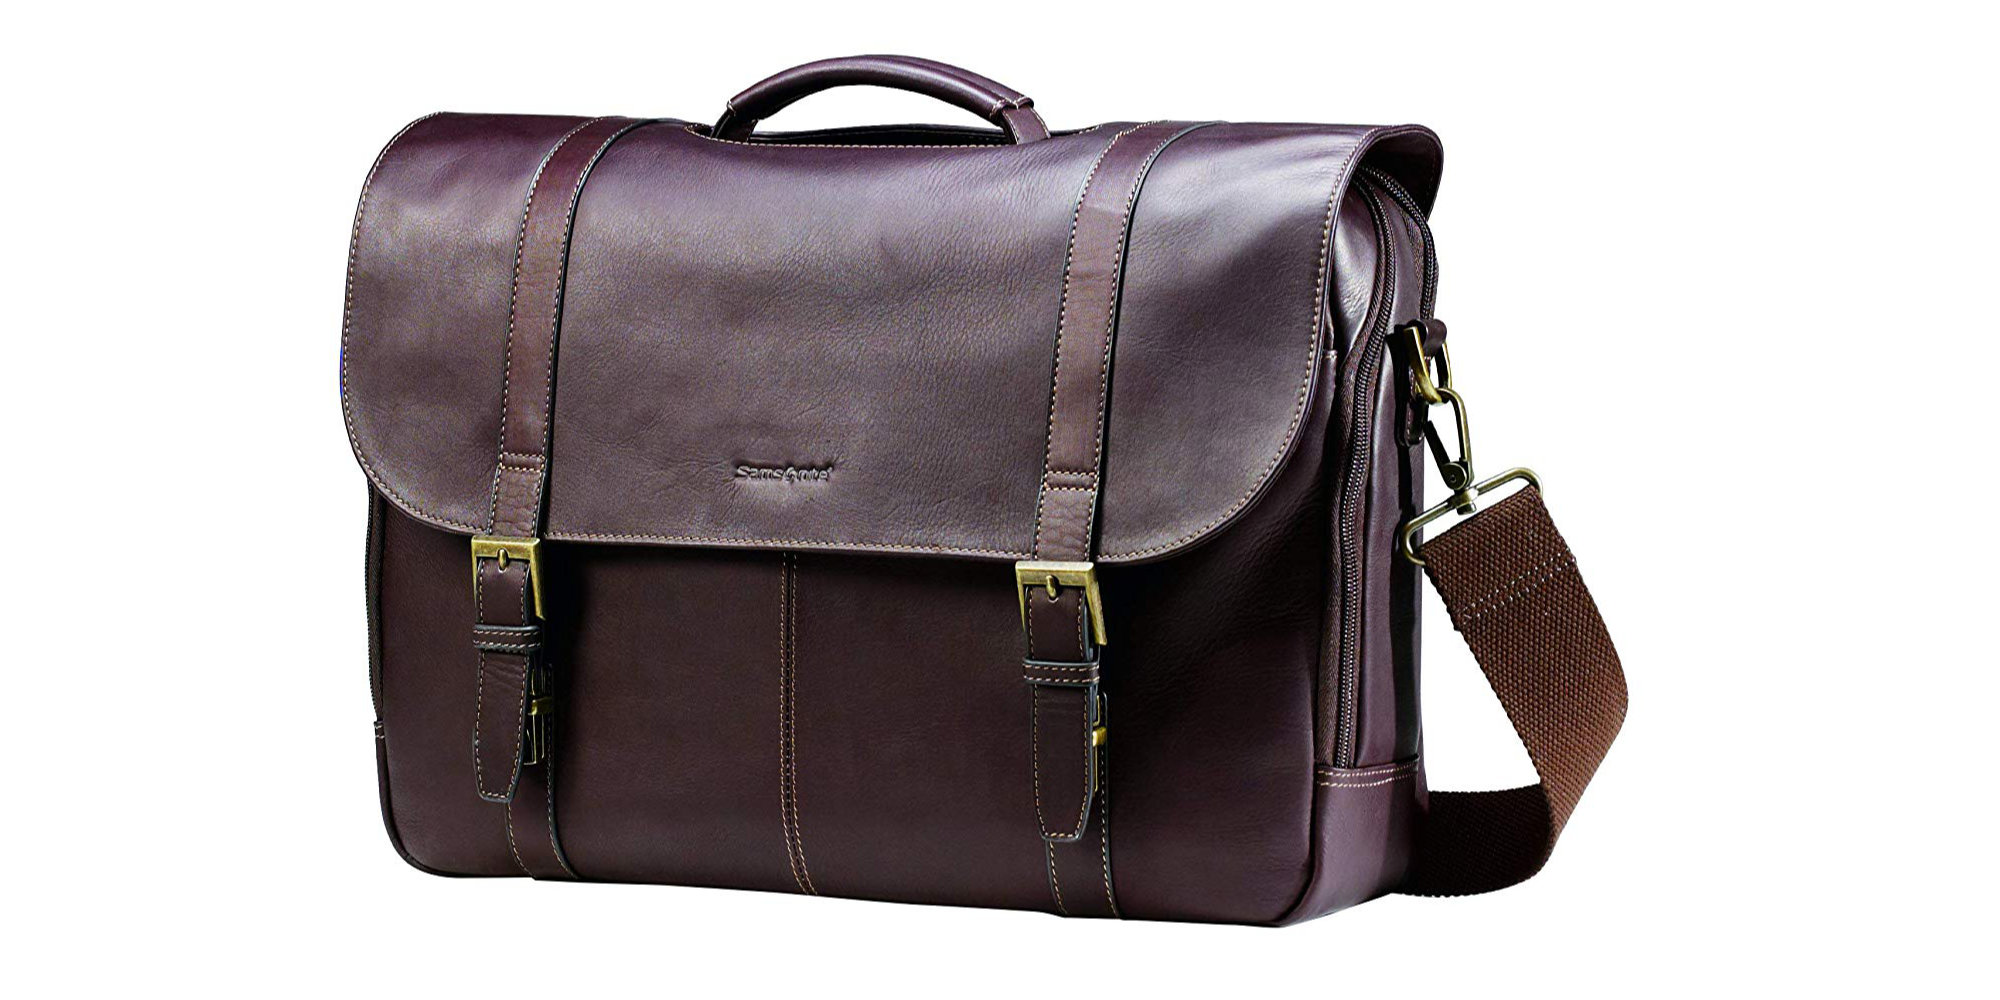 Samsonite's MacBook-ready Columbian Leather Messenger Bag drops to $60 (All-time low) - 9to5Toys